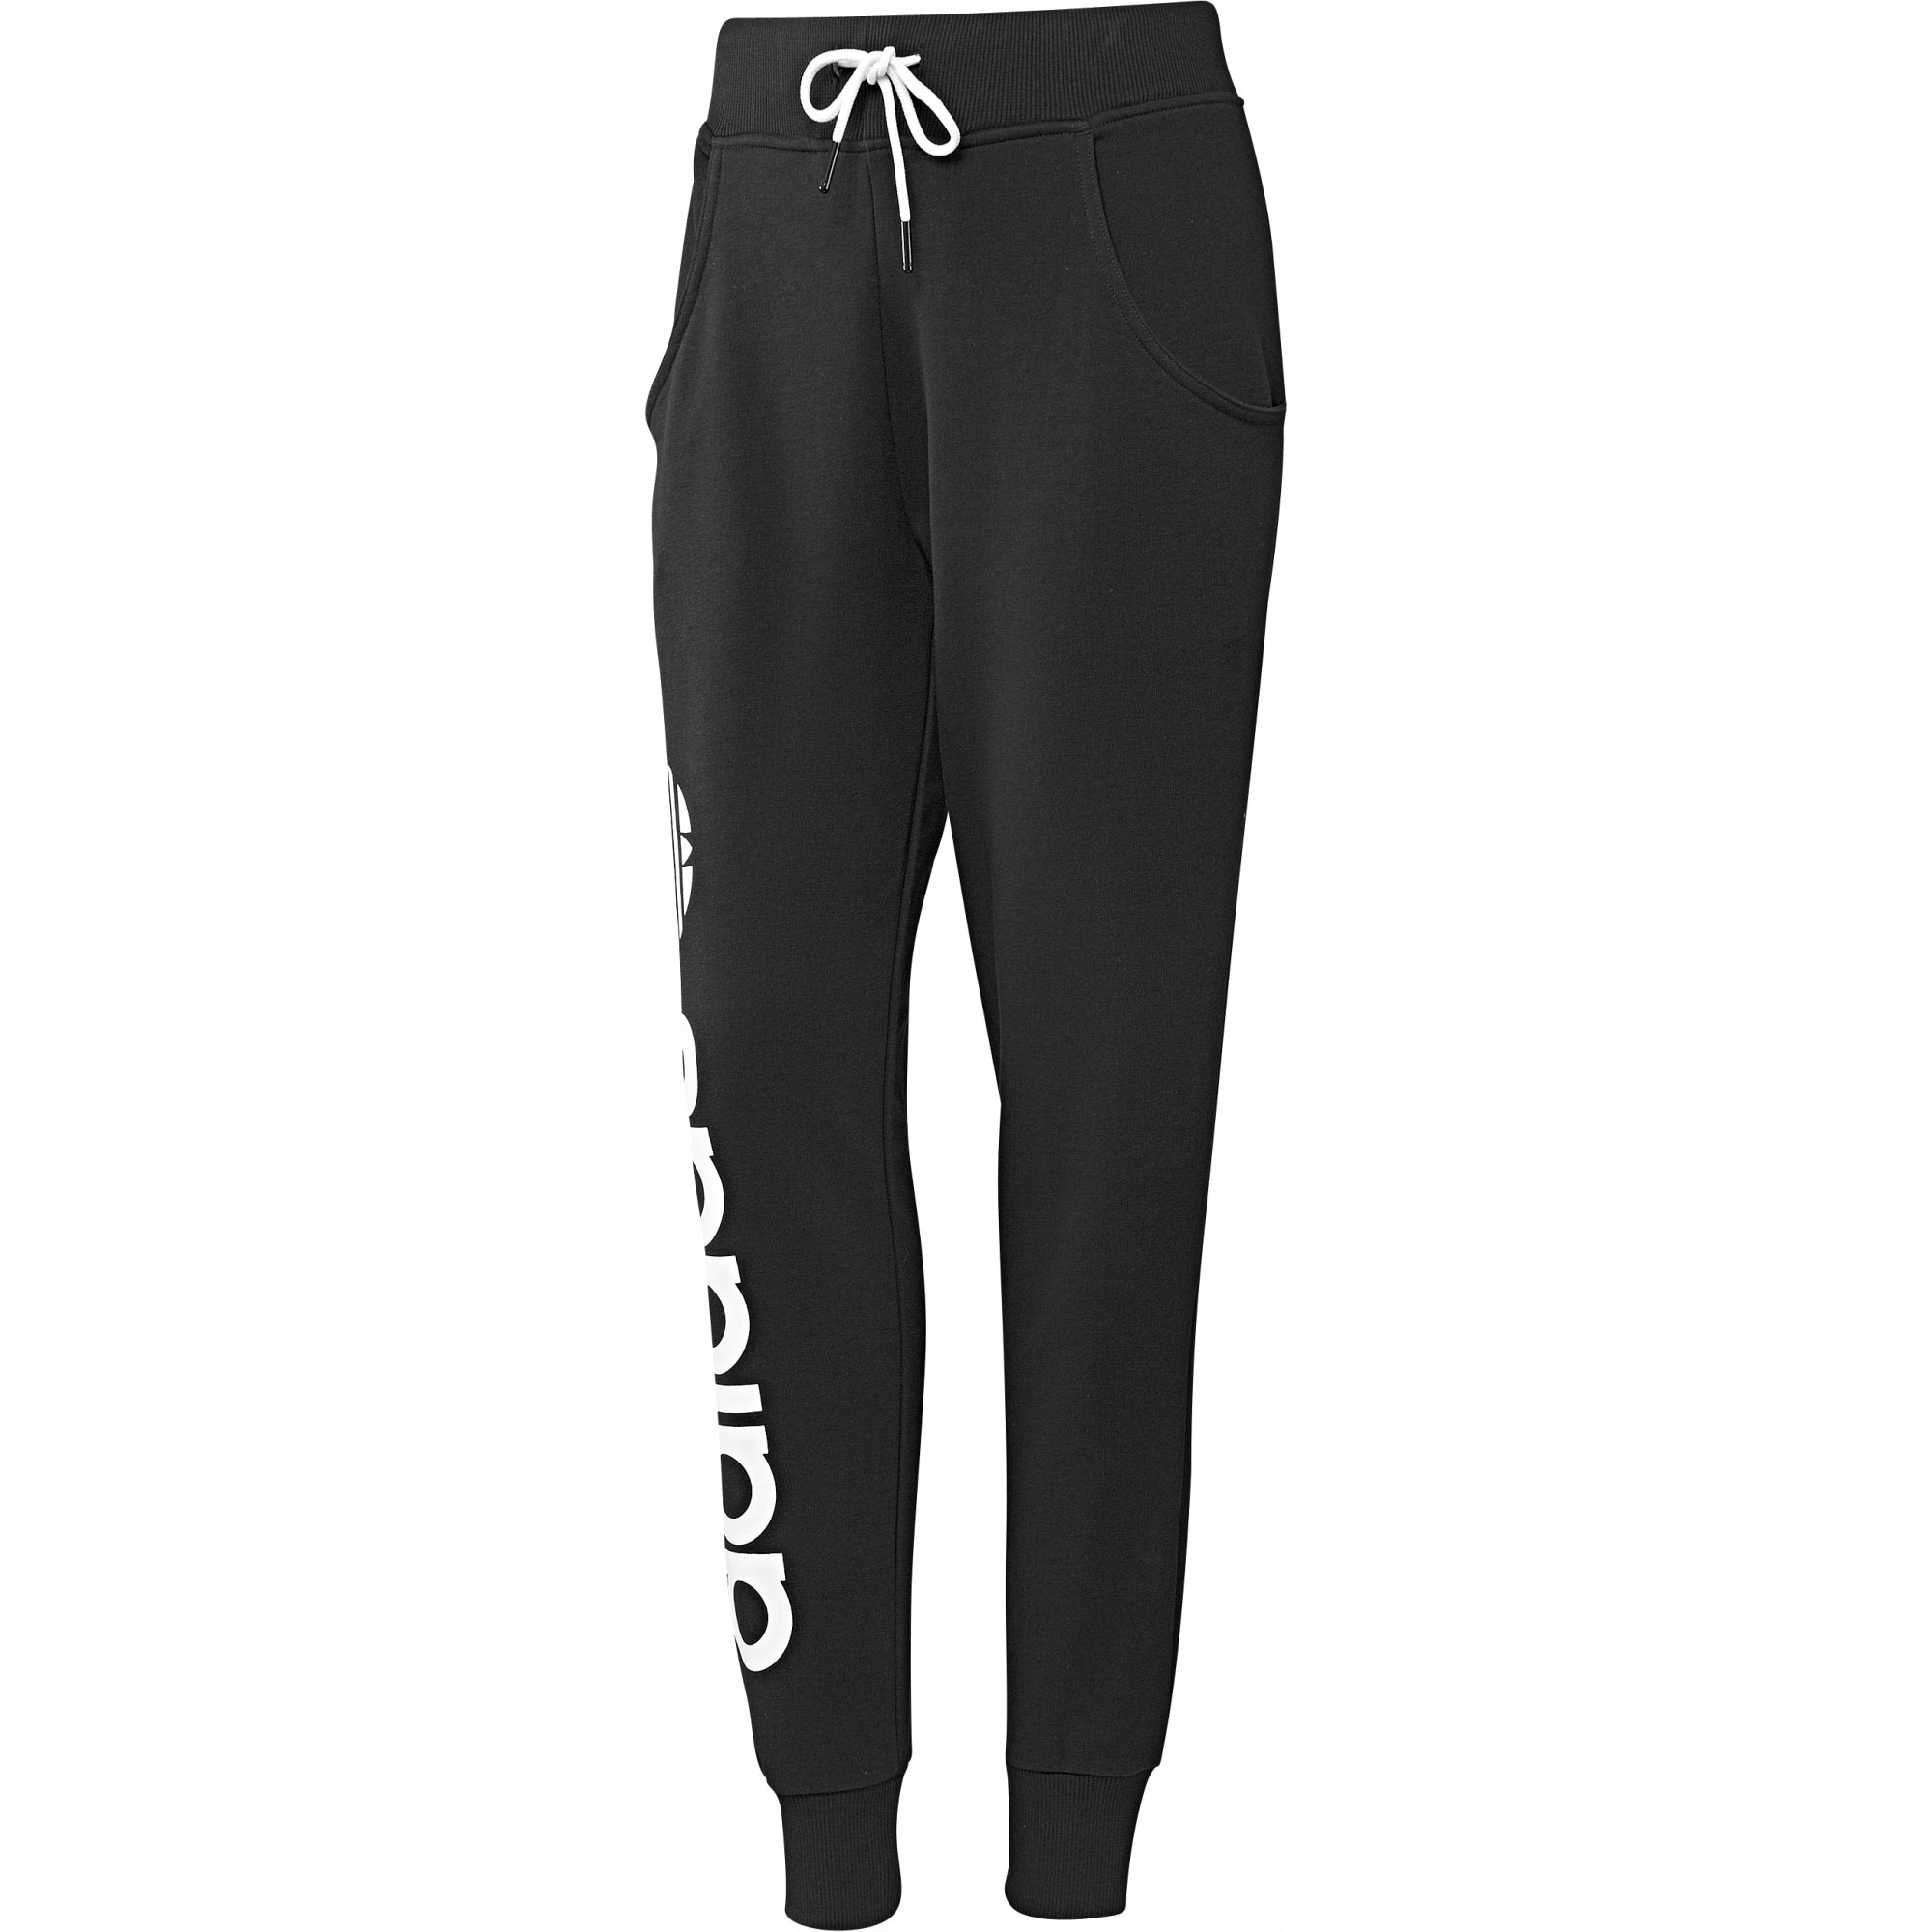 adidas Women's Baggy Track Pants